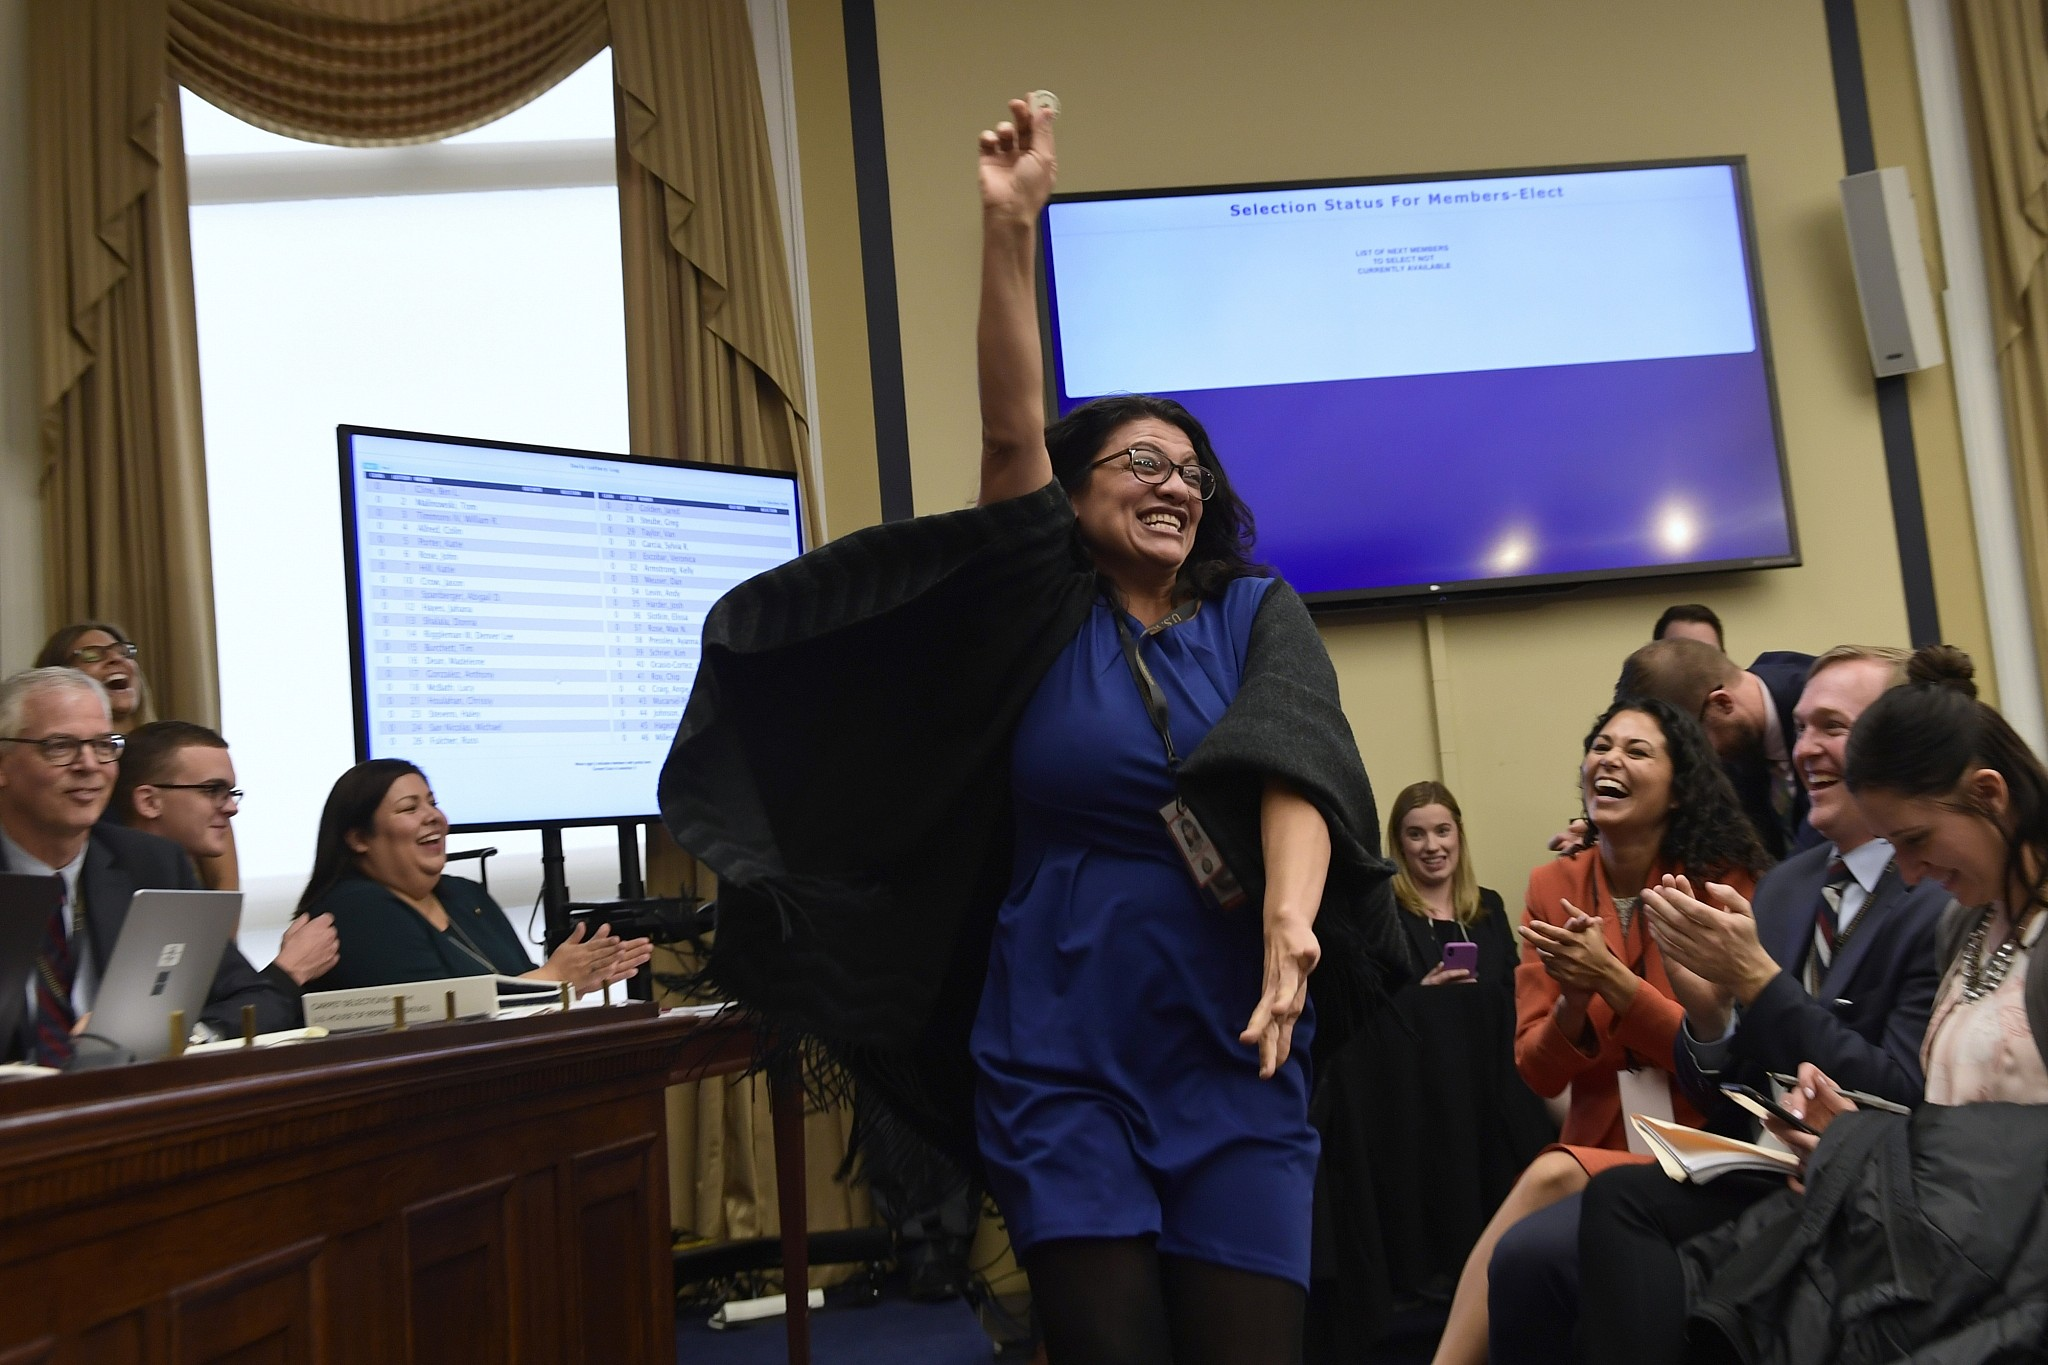 New House Democrat Rashida Tlaib vows, 'We're gonna impeach the motherf****r'